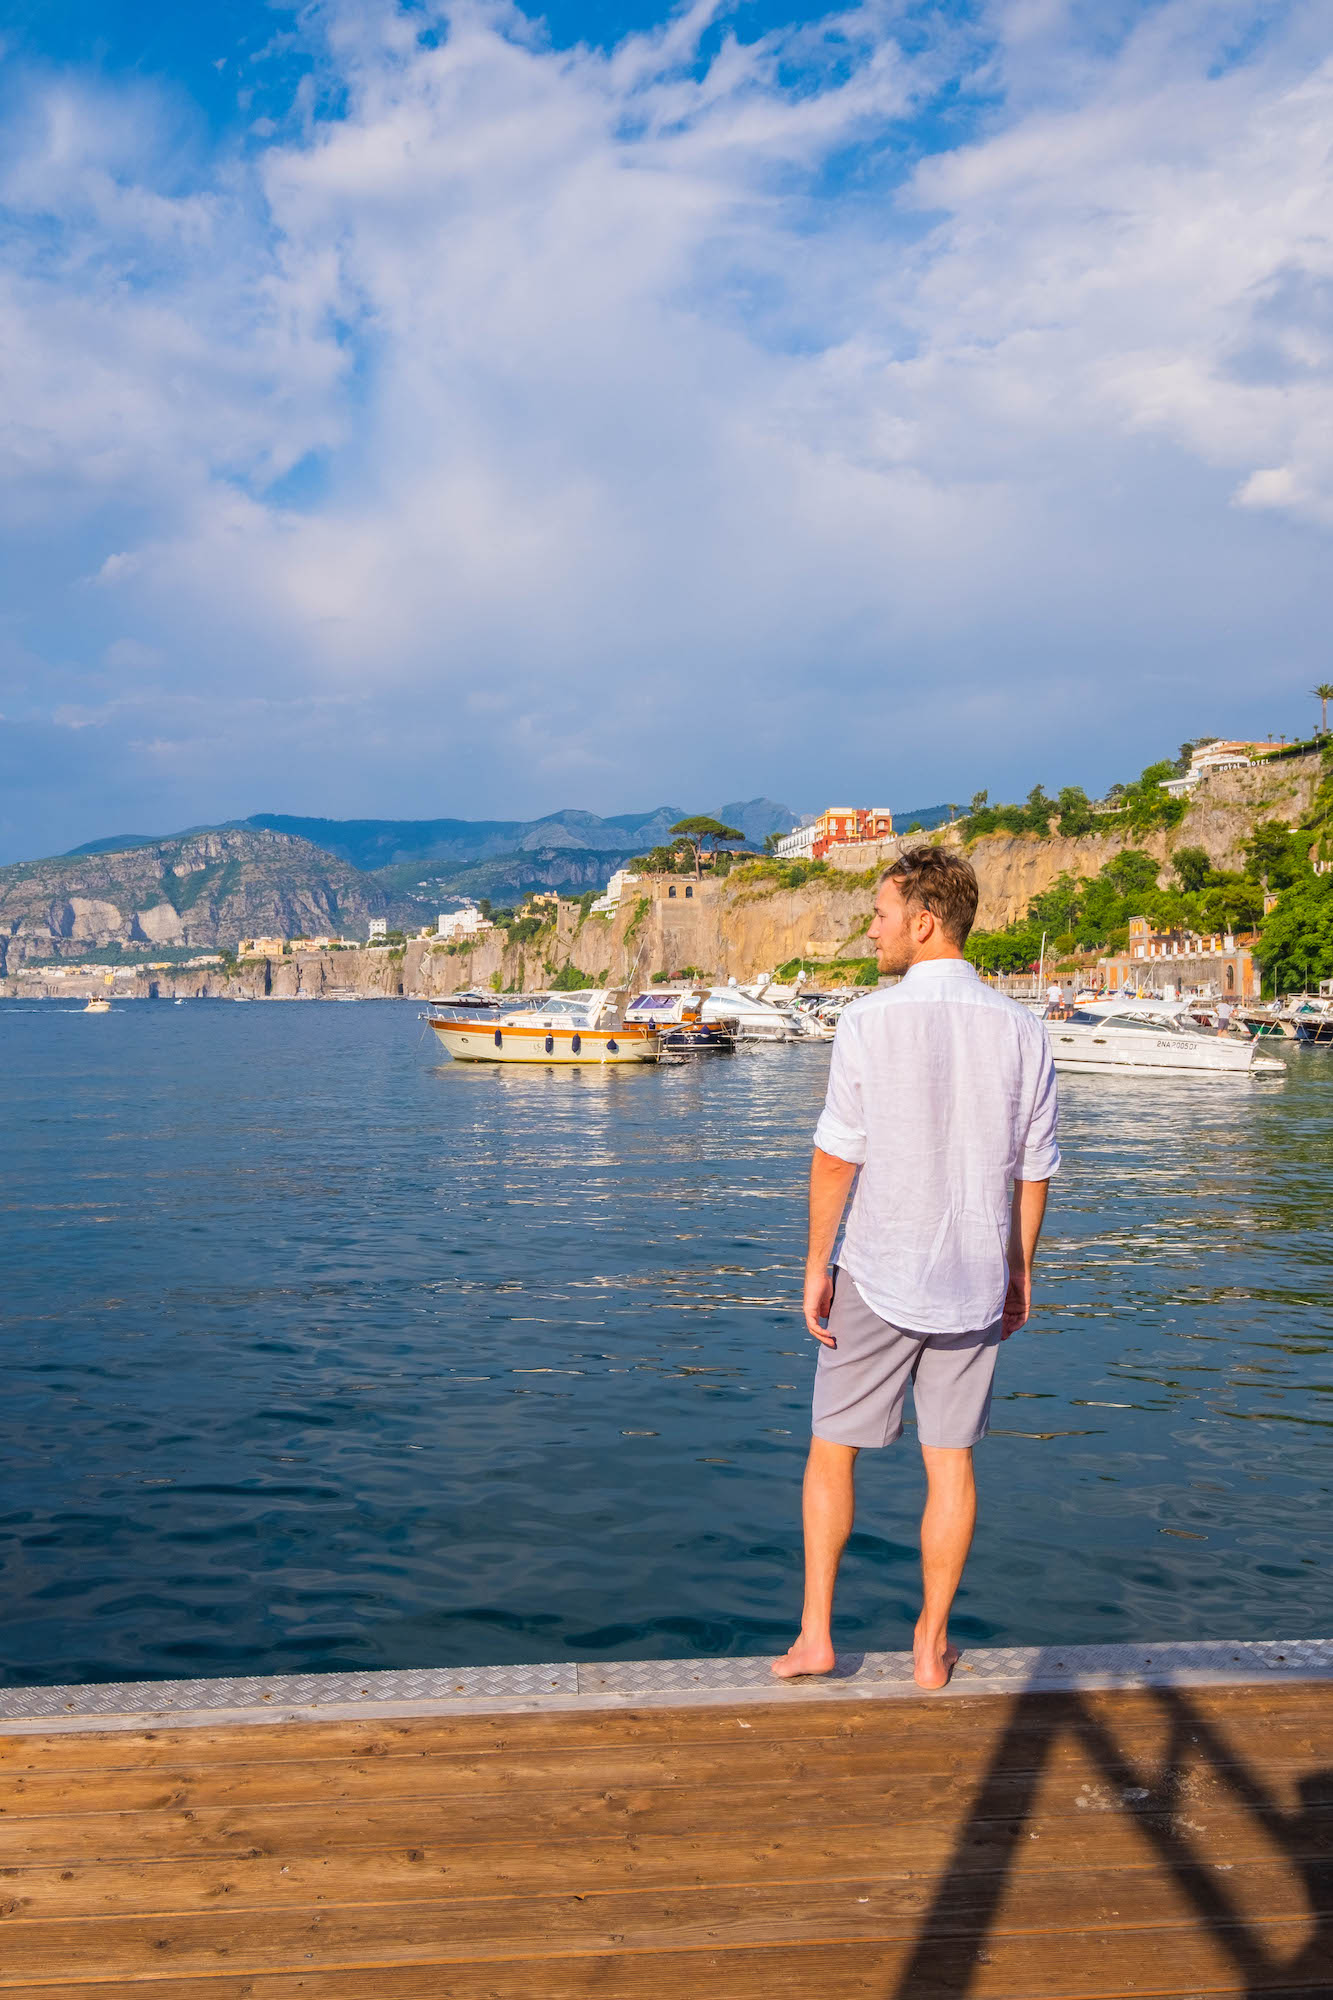 Cameron on the dock in Sorrento in linen shirt and board shorts